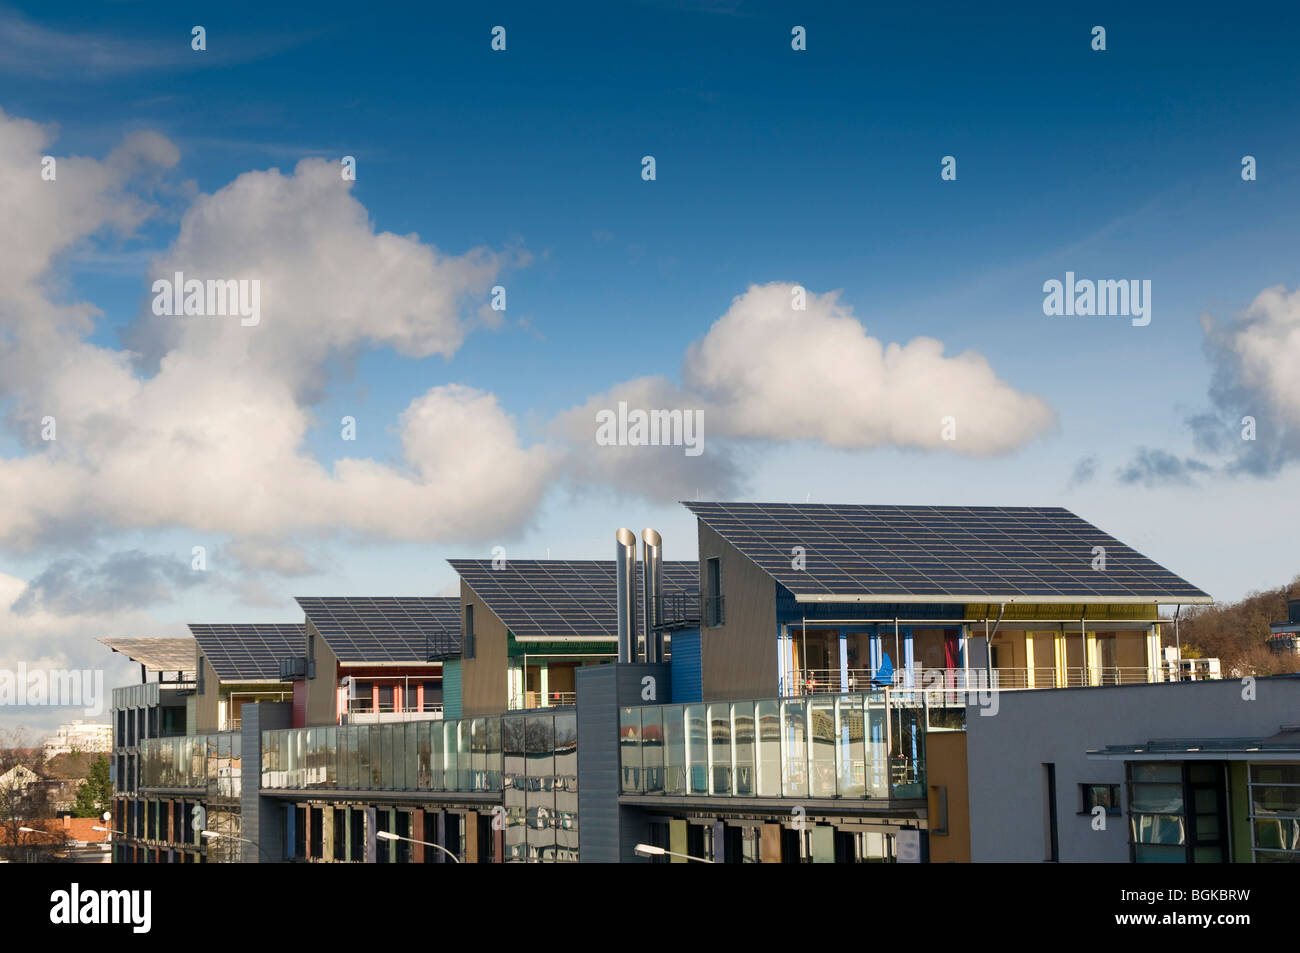 Roofs with solar systems, ecological Vauban district in Freiburg, Baden-Wuerttemberg, Germany, Europe - Stock Image